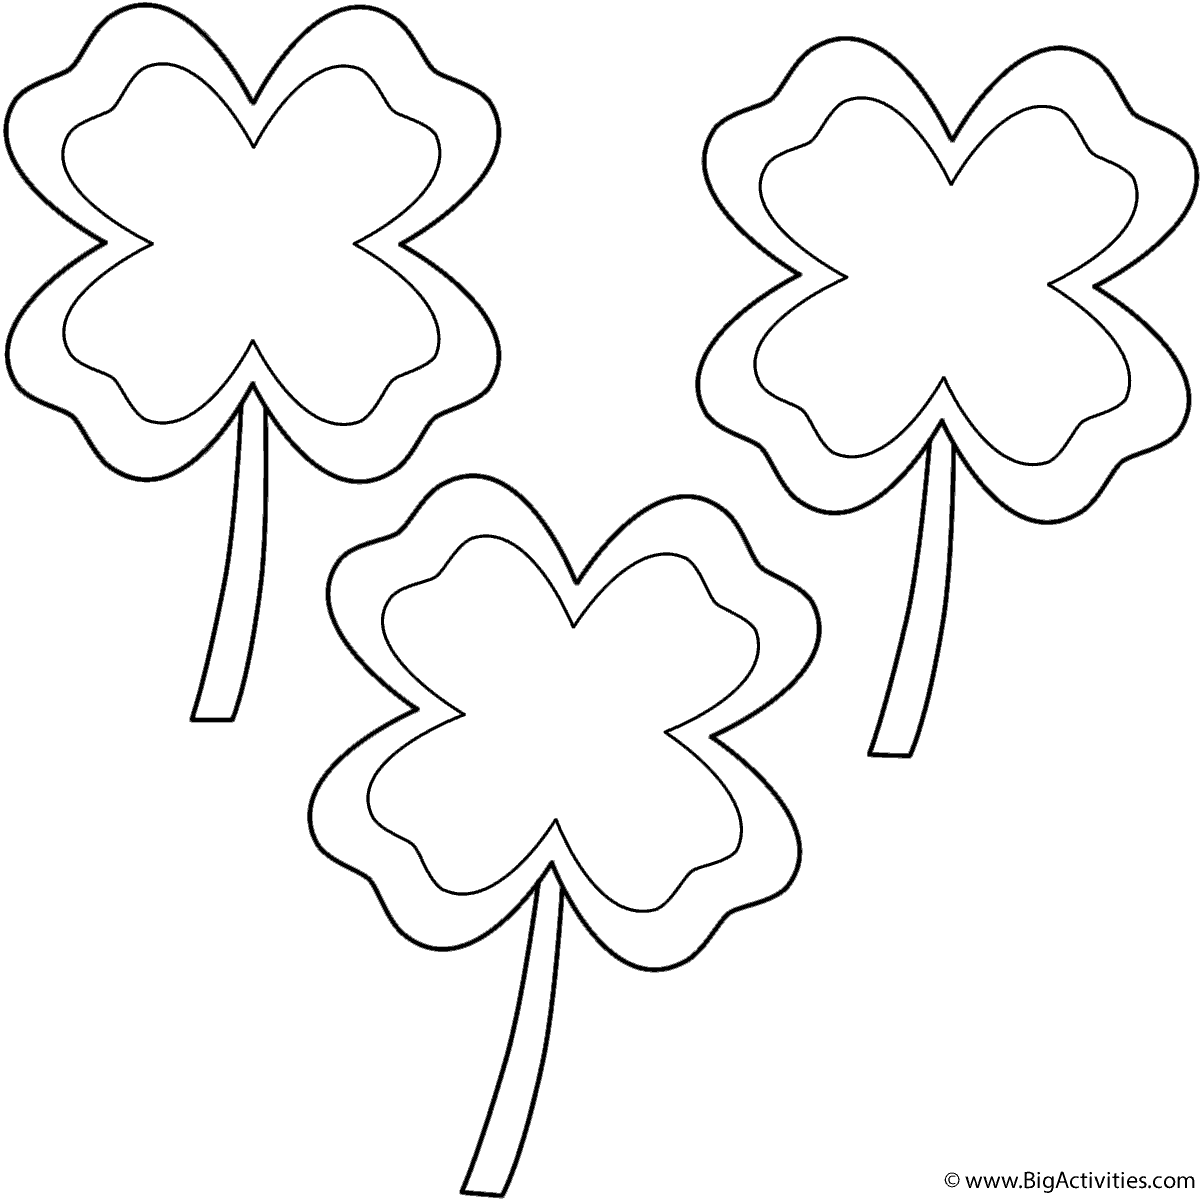 Four Leaf Clovers With Border 3 Clovers